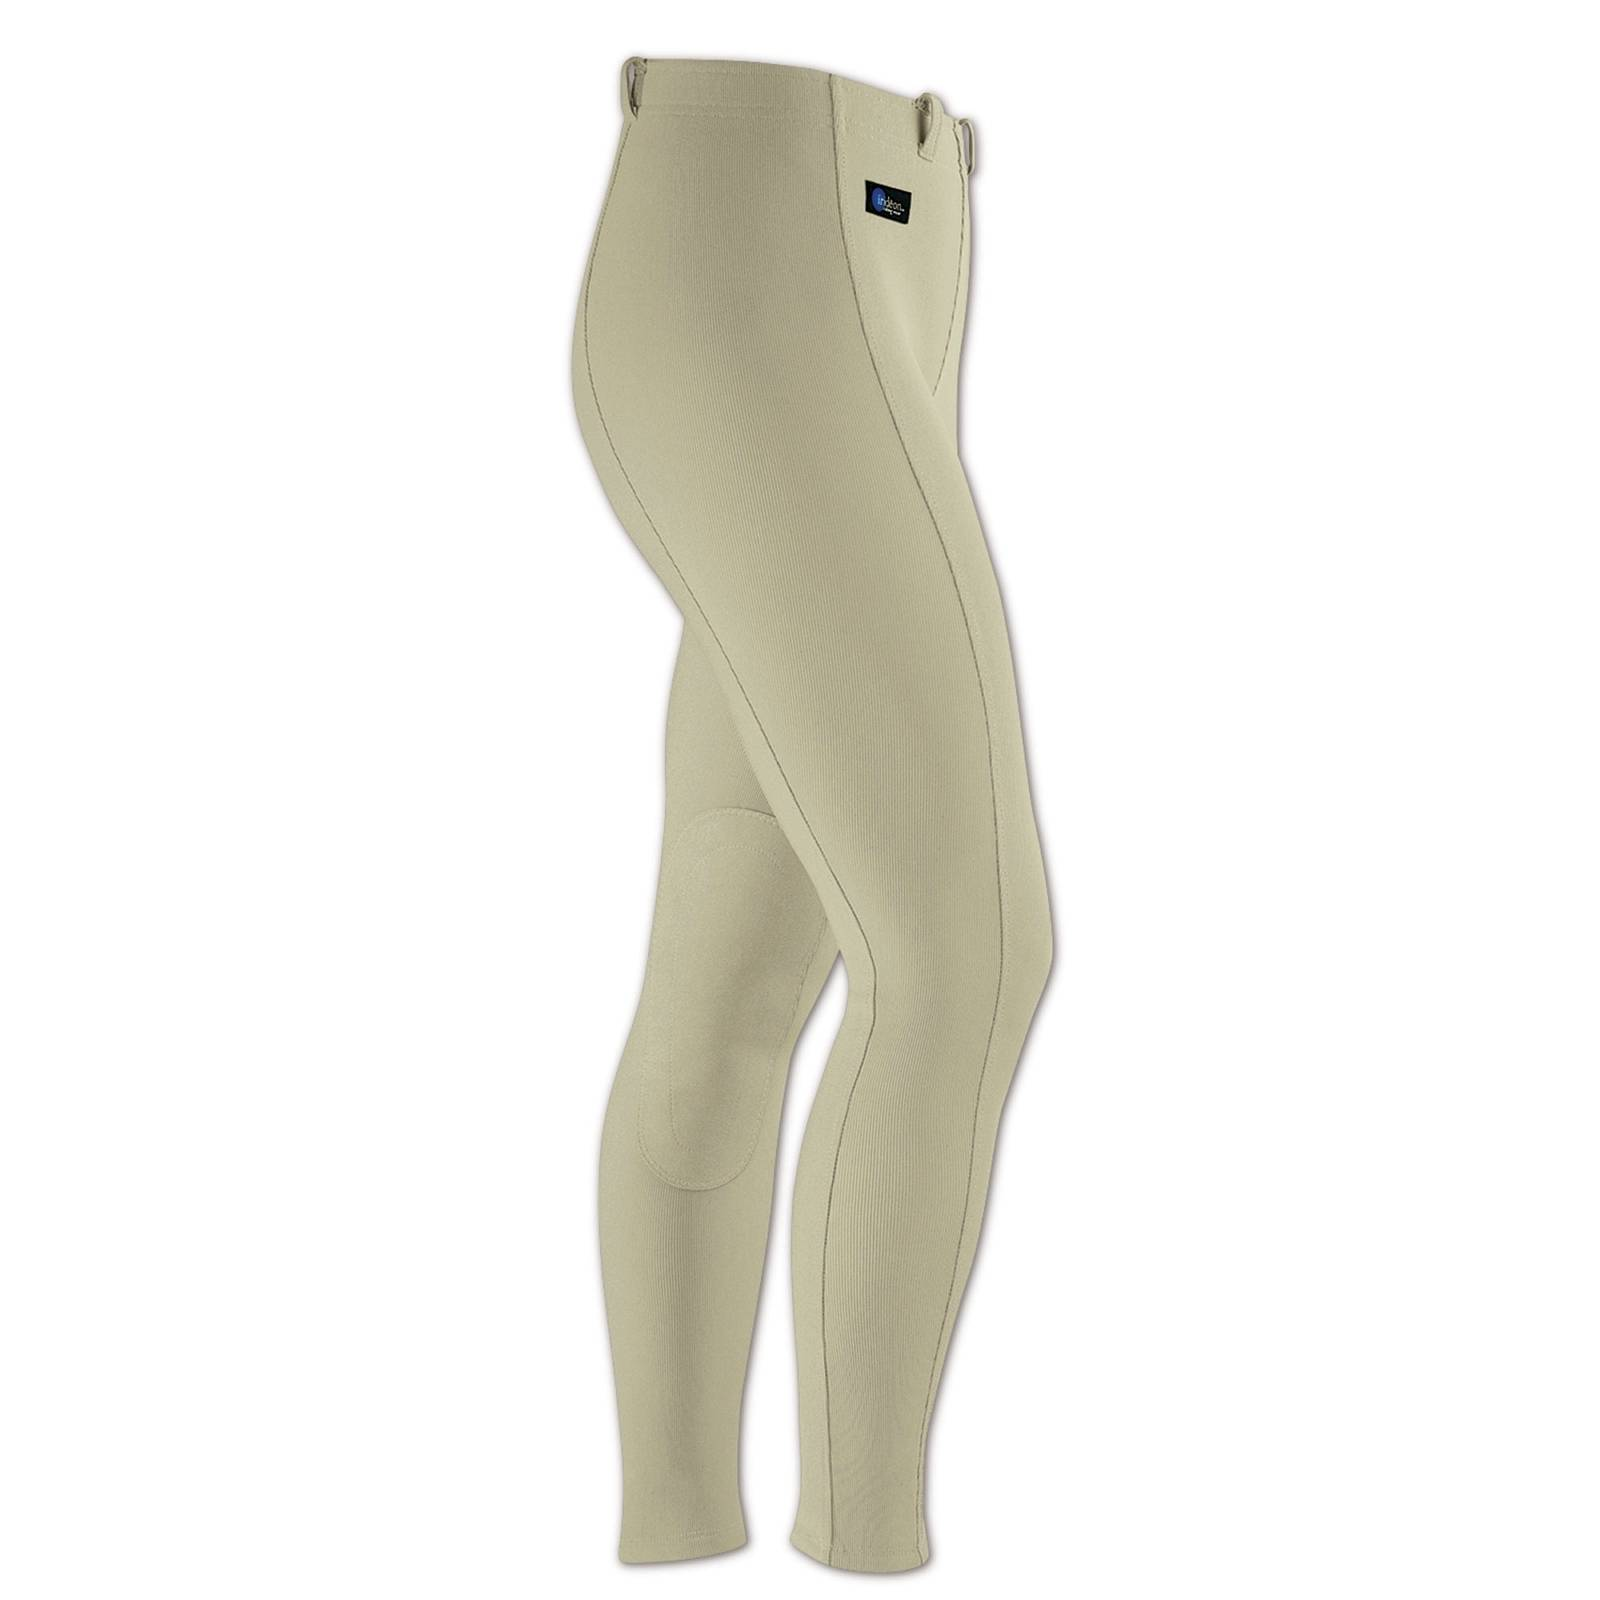 Irideon Cadence Low Rise Knee Patch Breeches - Ladies